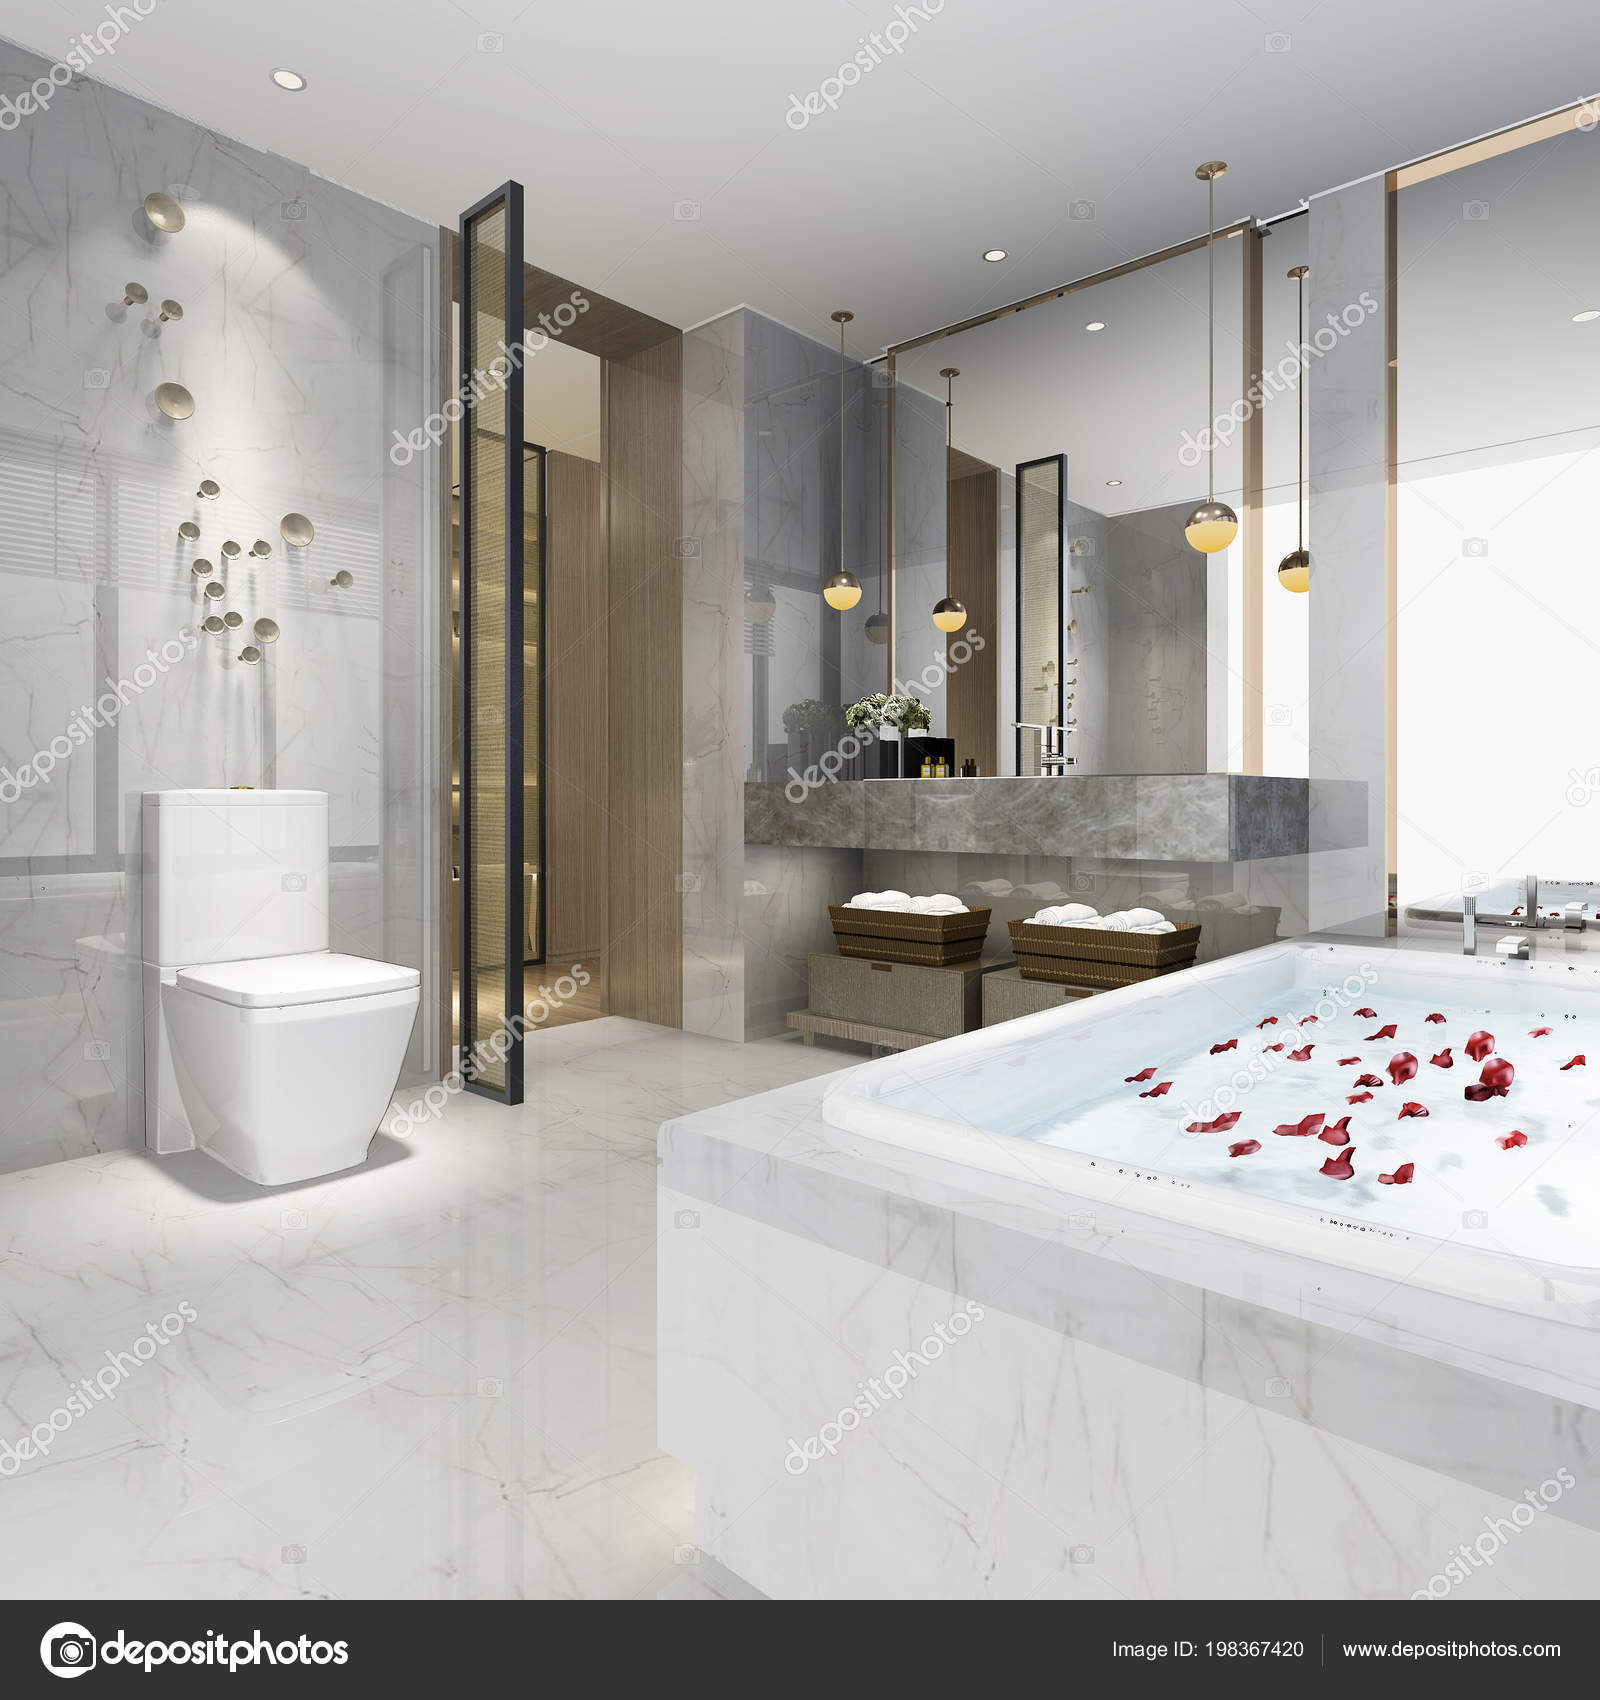 Luxe Rendu Moderne Design Salle Bain — Photographie dit26978 ...